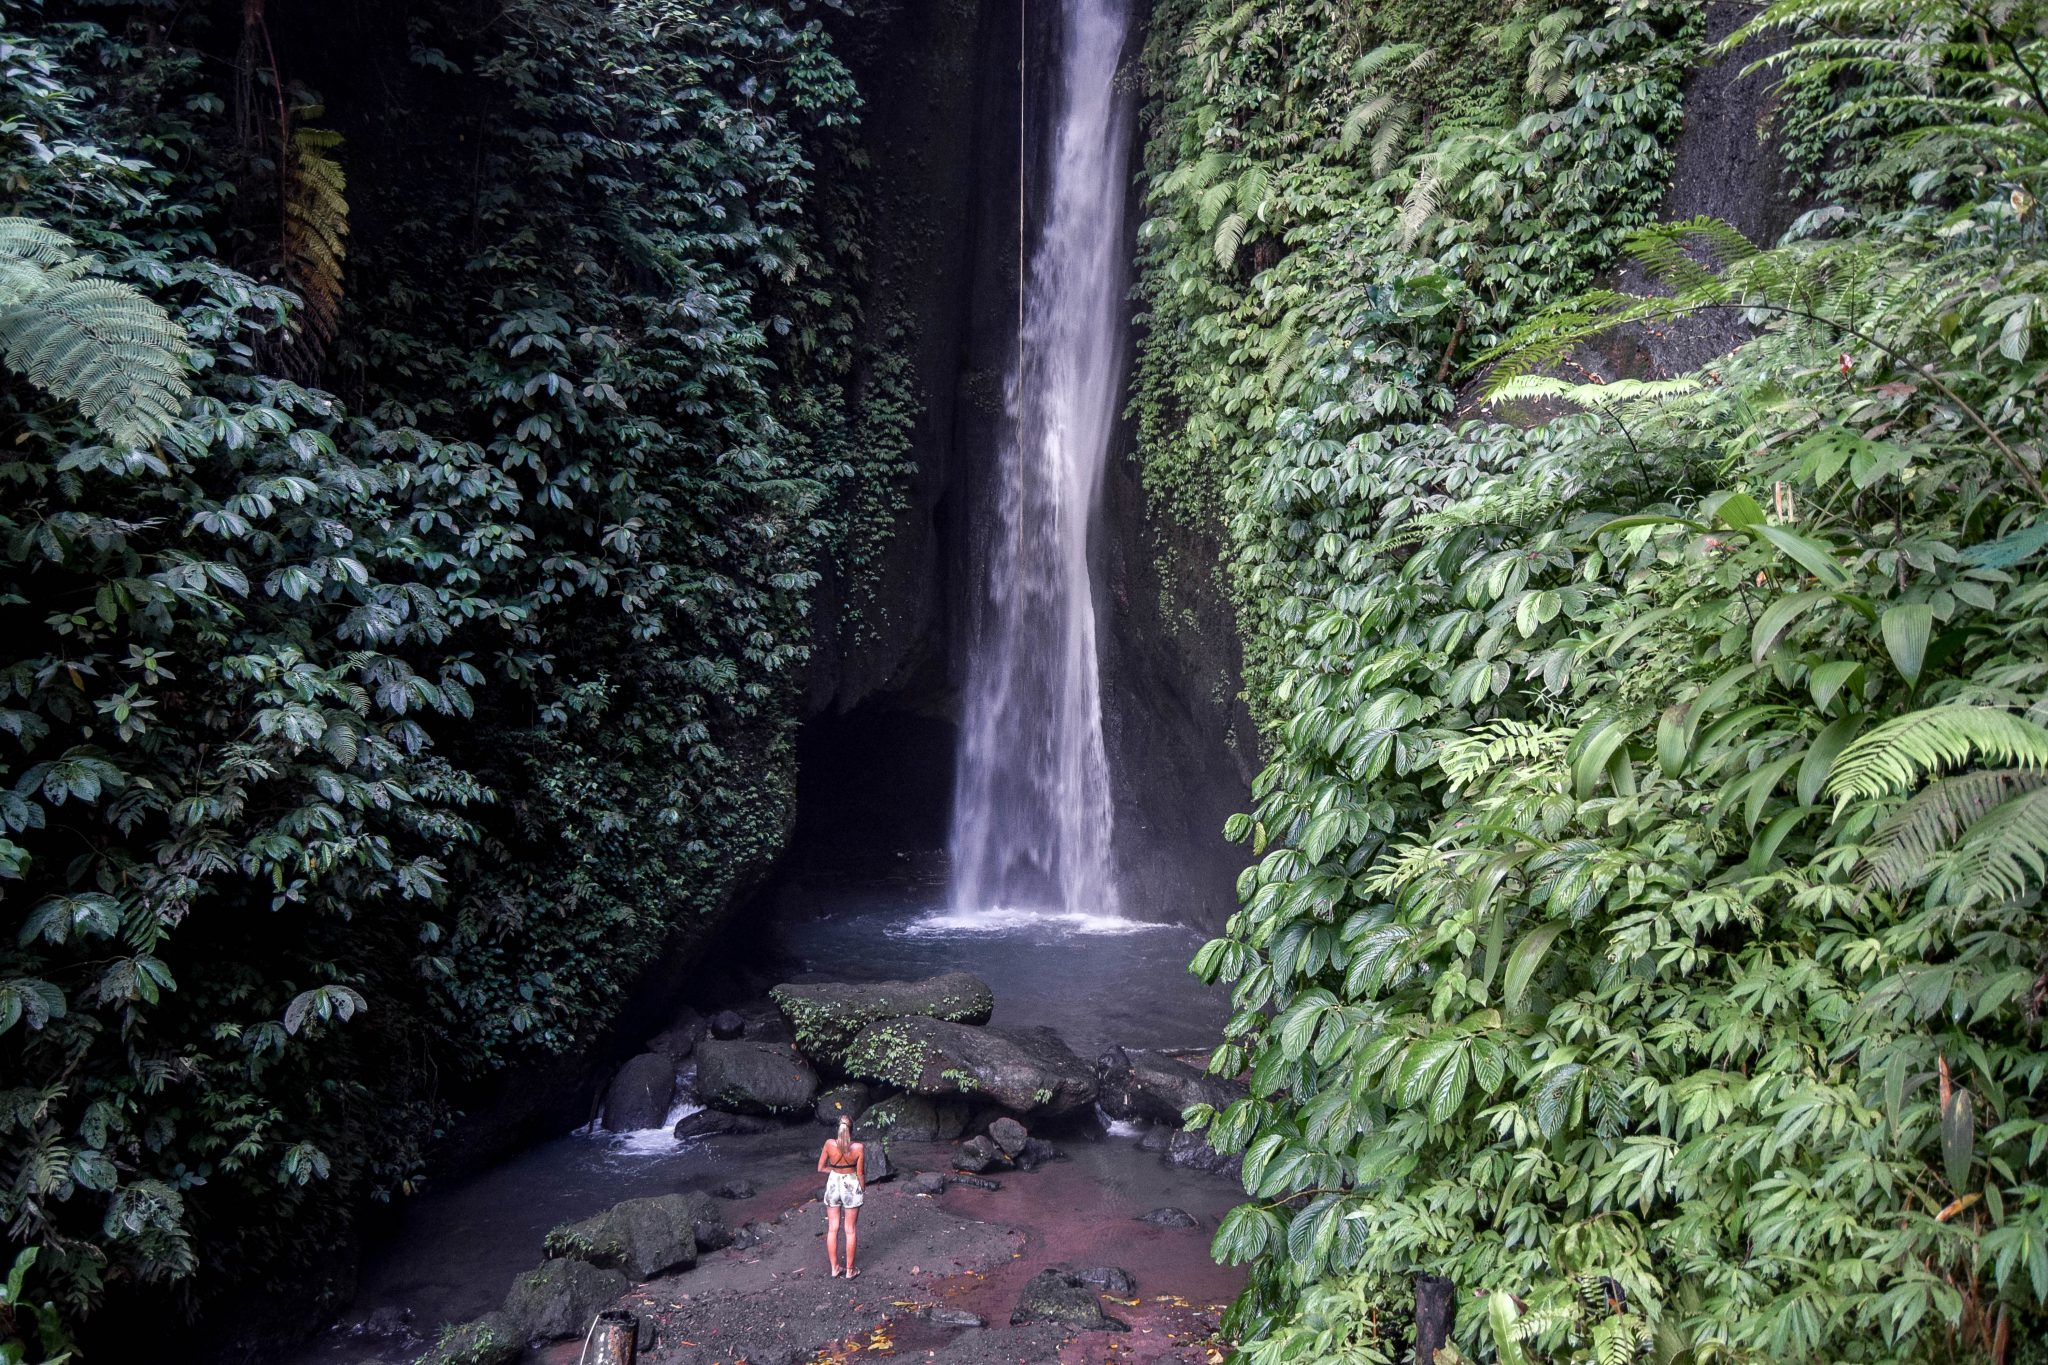 Wanderers & Warriors - Charlie & Lauren UK Travel Couple - Leke Leke Waterfall Bali - An Awesome Day Trip - Bali Waterfalls - Best Waterfalls In Bali - Waterfalls Near Ubud